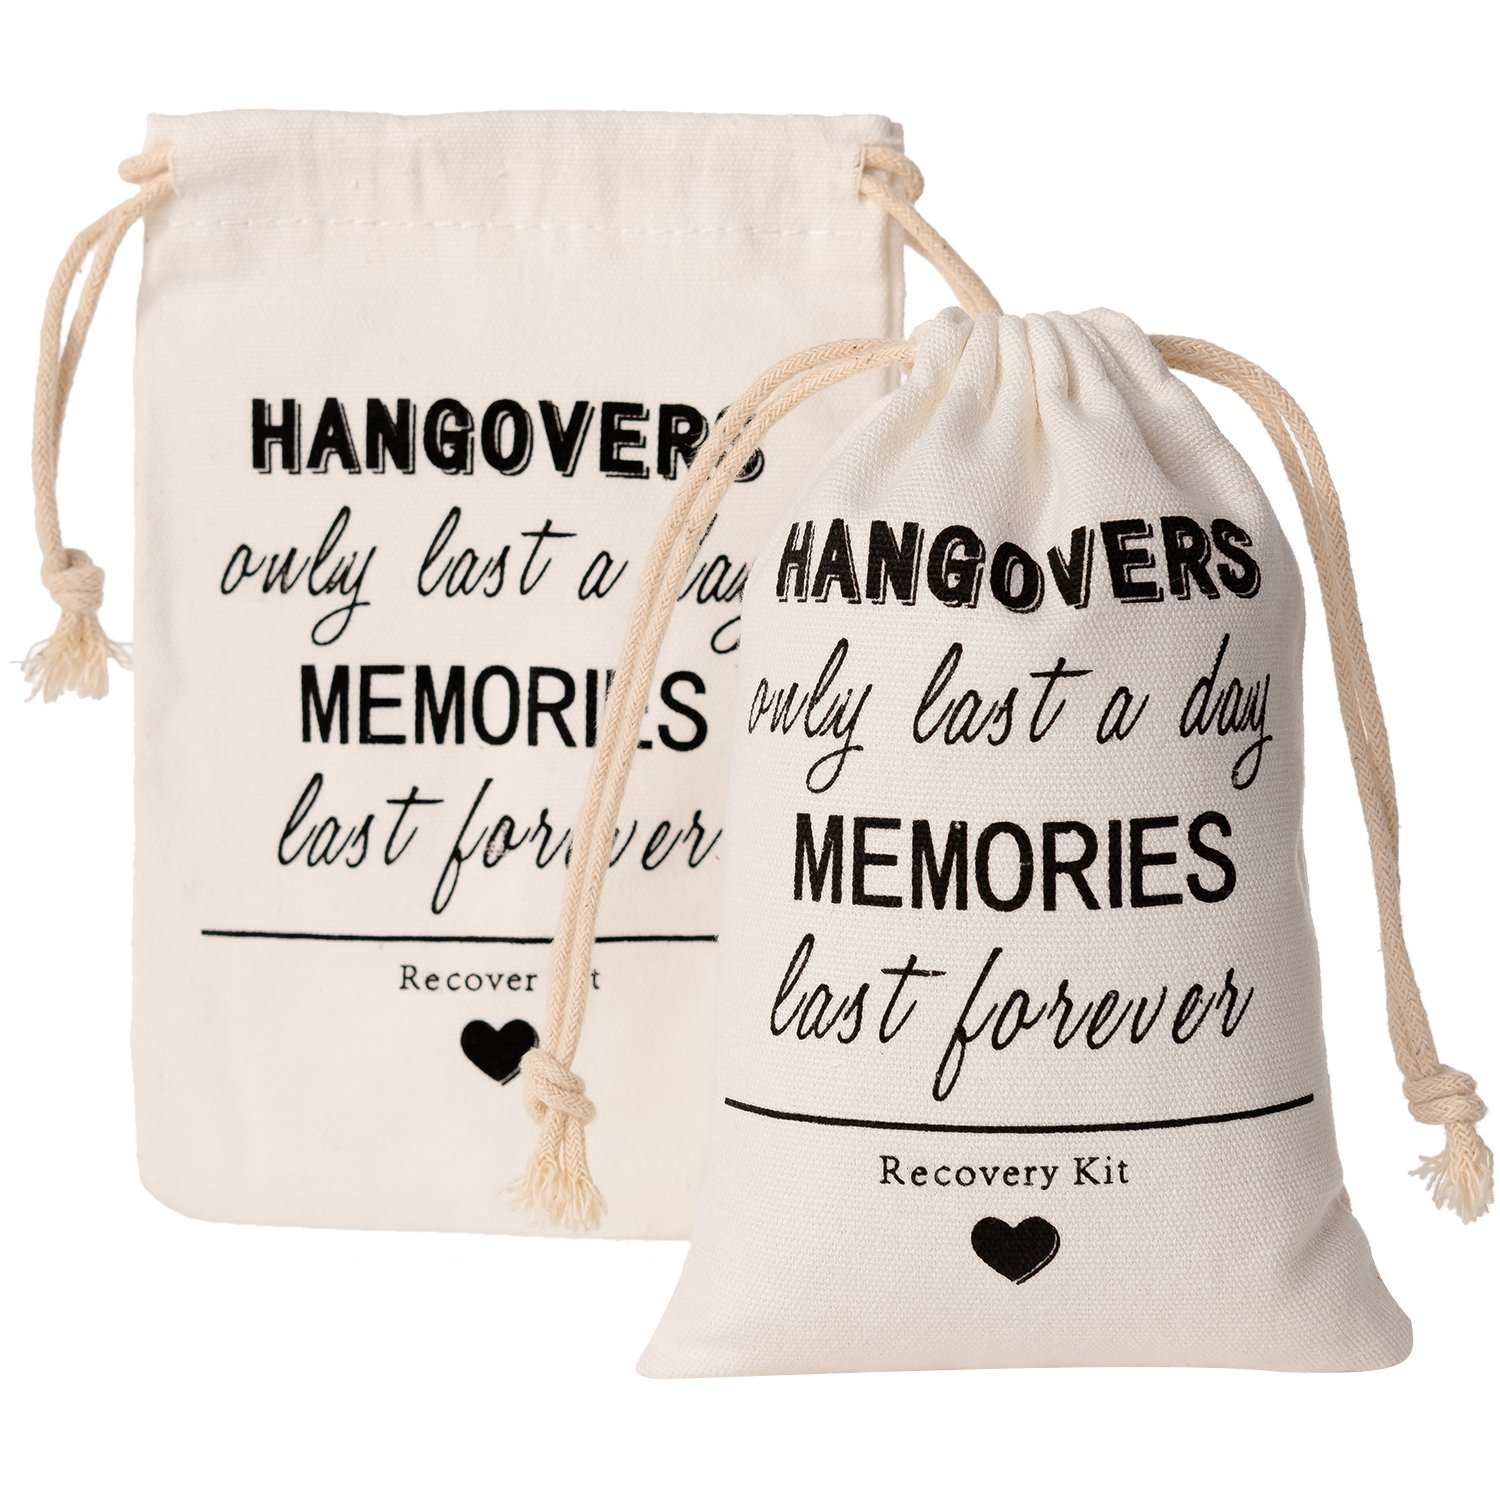 0816b5518e6c Crisky Hangover Kit Bags, Recovery Kit Bags, Bachelorette Party  Decorations,